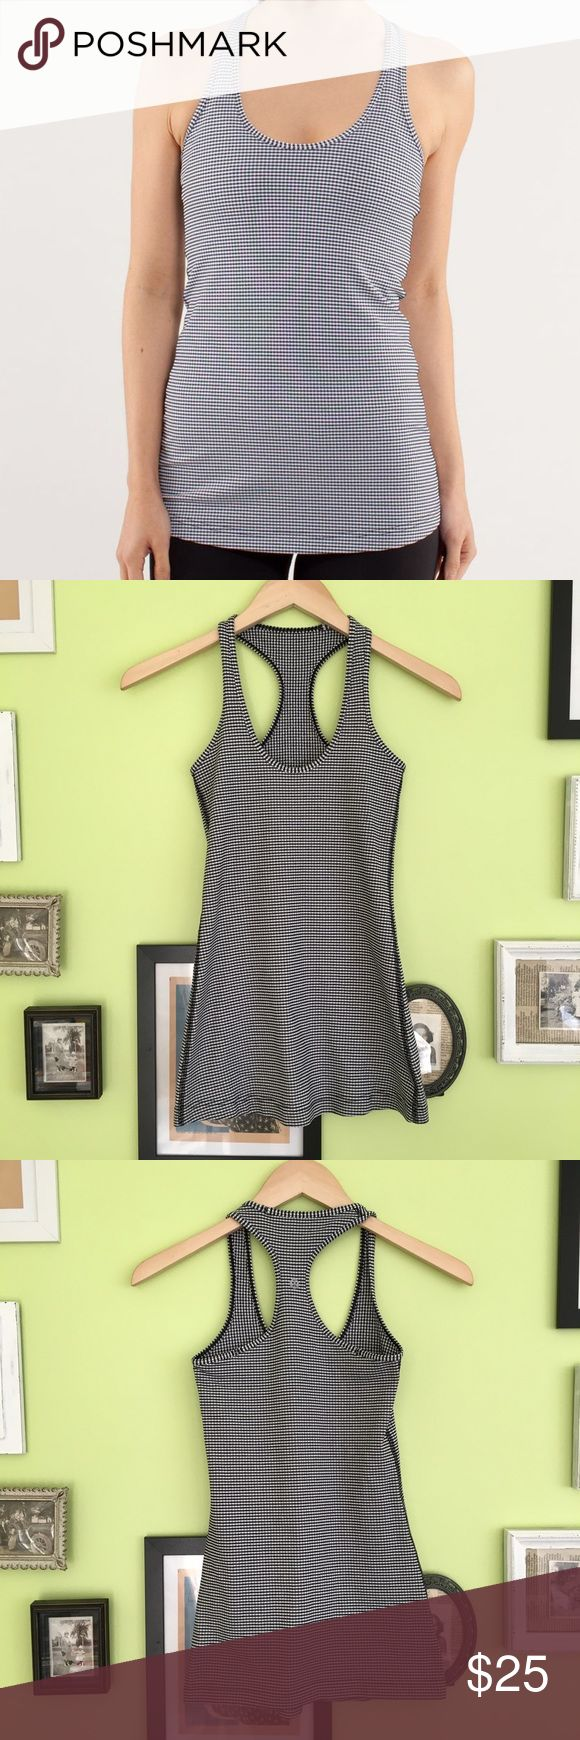 Lululemon Cool Racerback Tank Lululemon cool racerback gingham tank top. In very good condition. Not sure what the exact size is but I believe it is a 2.   ⭐️10% off 2+ bundle  ⭐️Size 2 ⭐️Smoke free home  ⭐️No stains or flaws lululemon athletica Tops Tank Tops